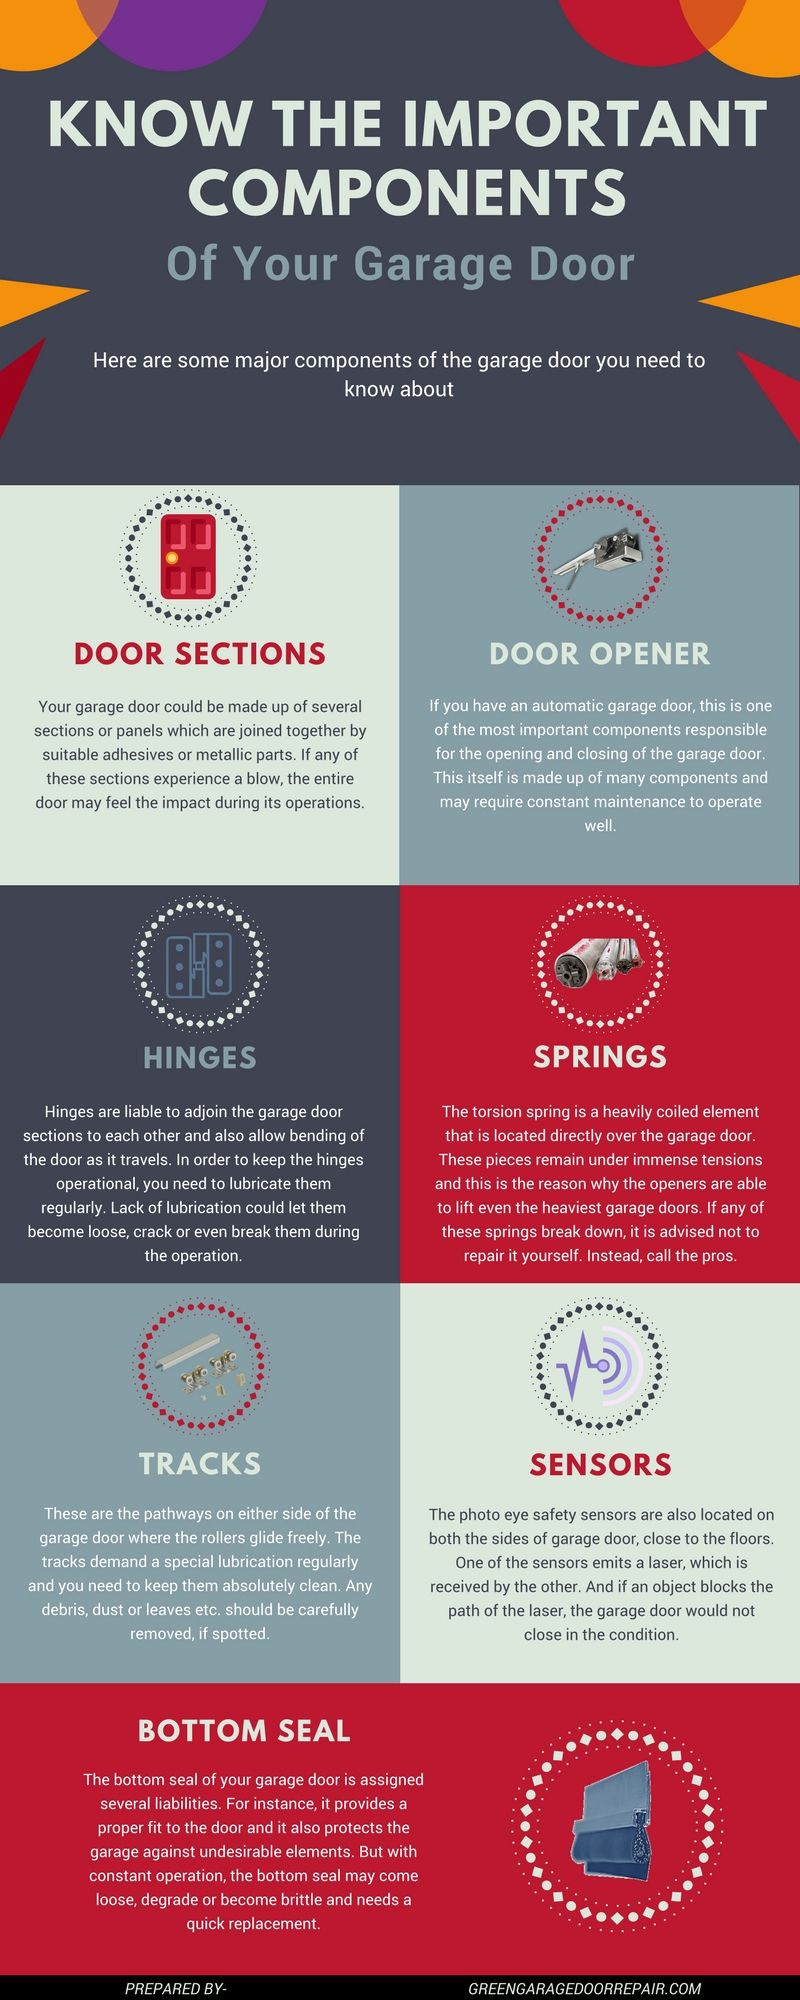 Garage Doors Are An Essential Element Of Your Home S Appearance And Security Here Are Some Major Components Of The Garag Garage Doors Garage Door Repair Doors